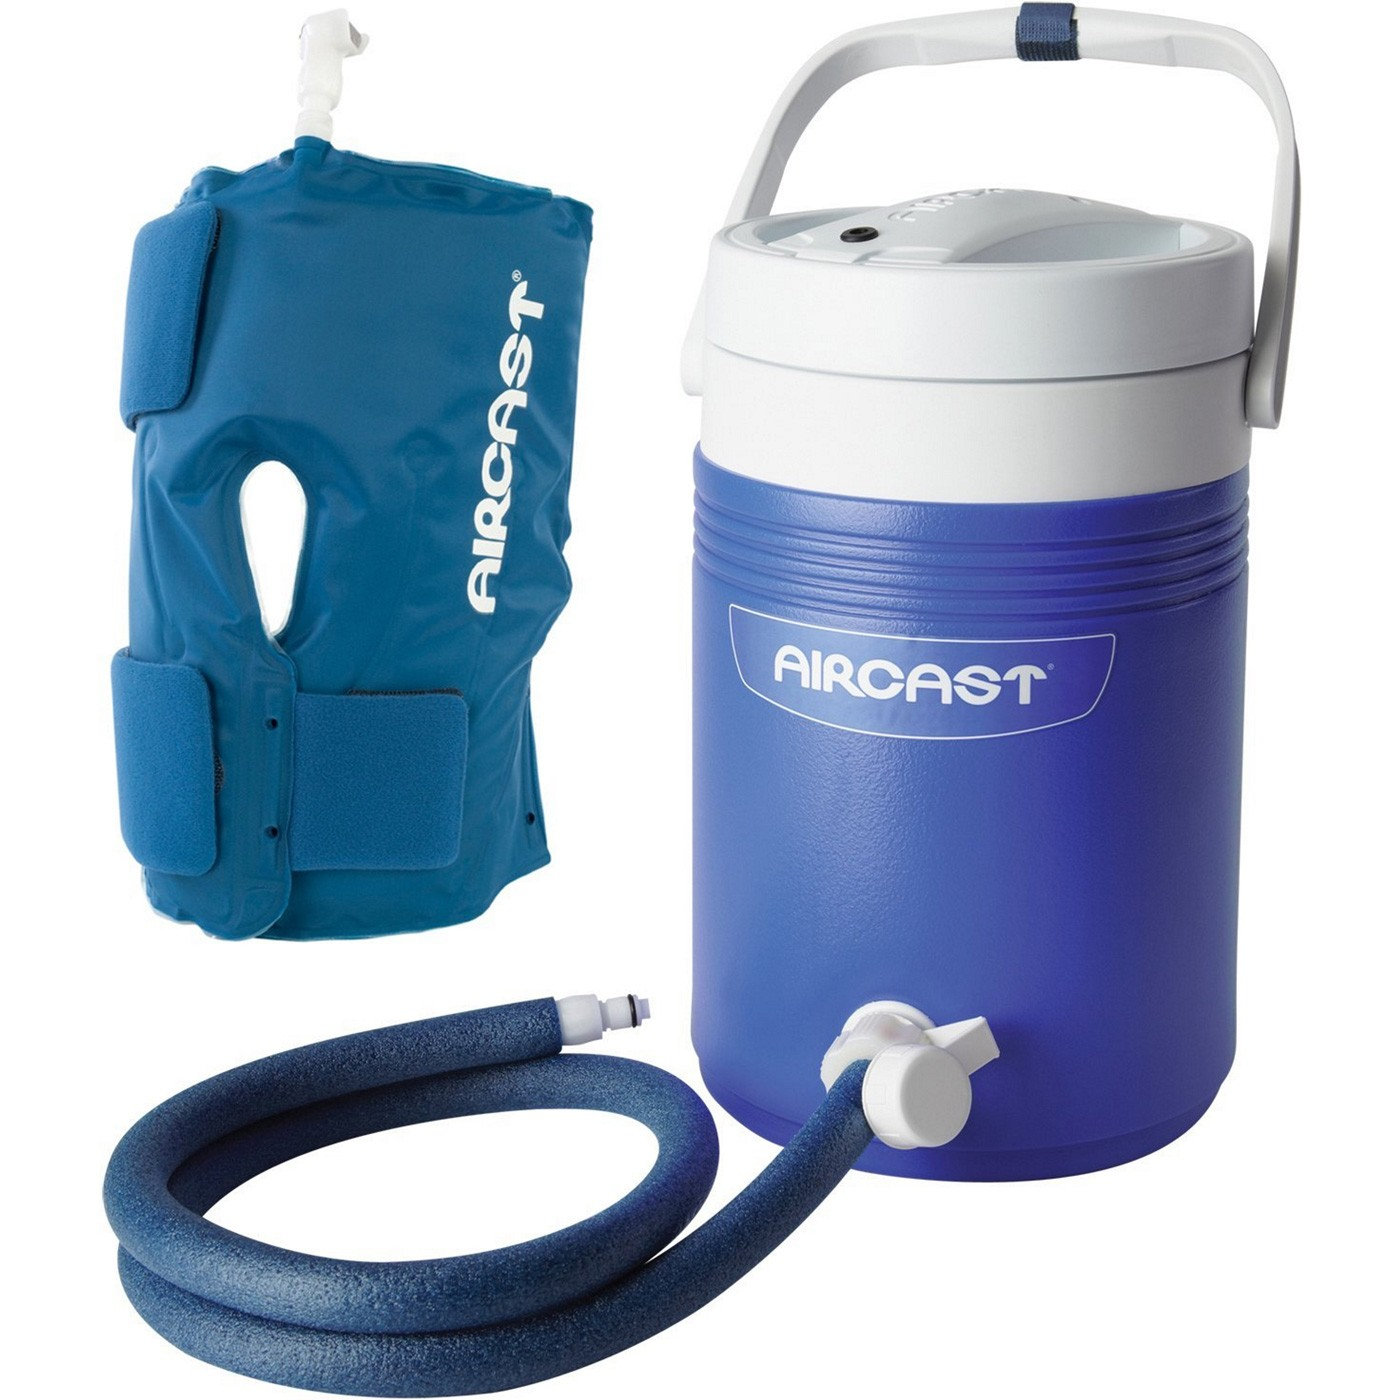 aircast machine